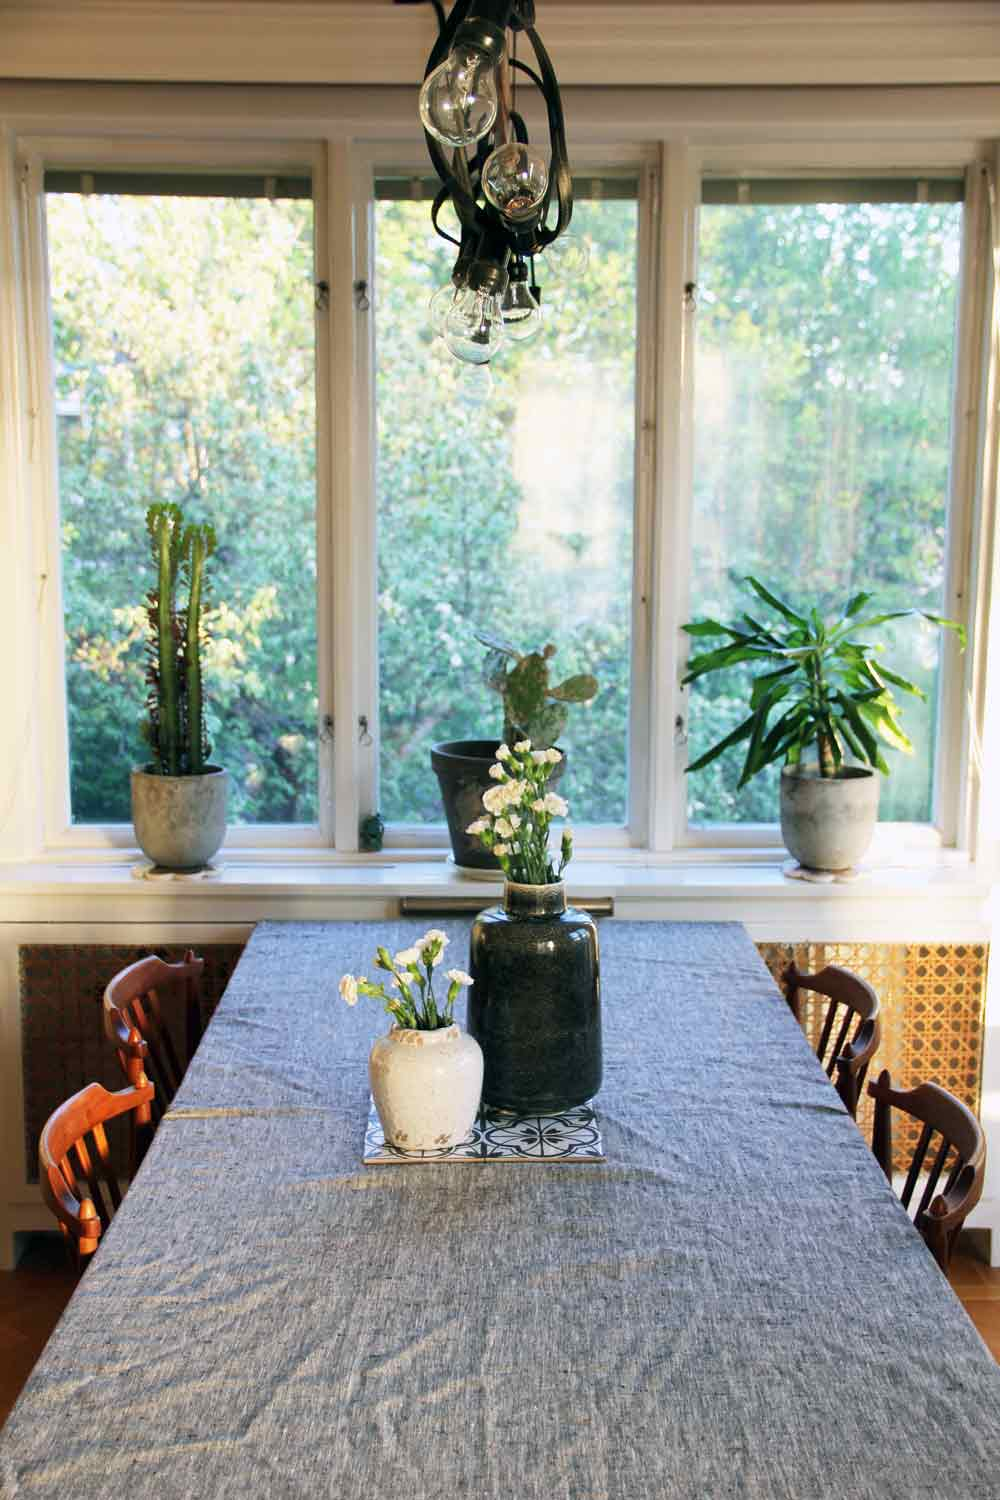 A Kurbits Villa Filled With Swedish Folk Art, on Design*Sponge